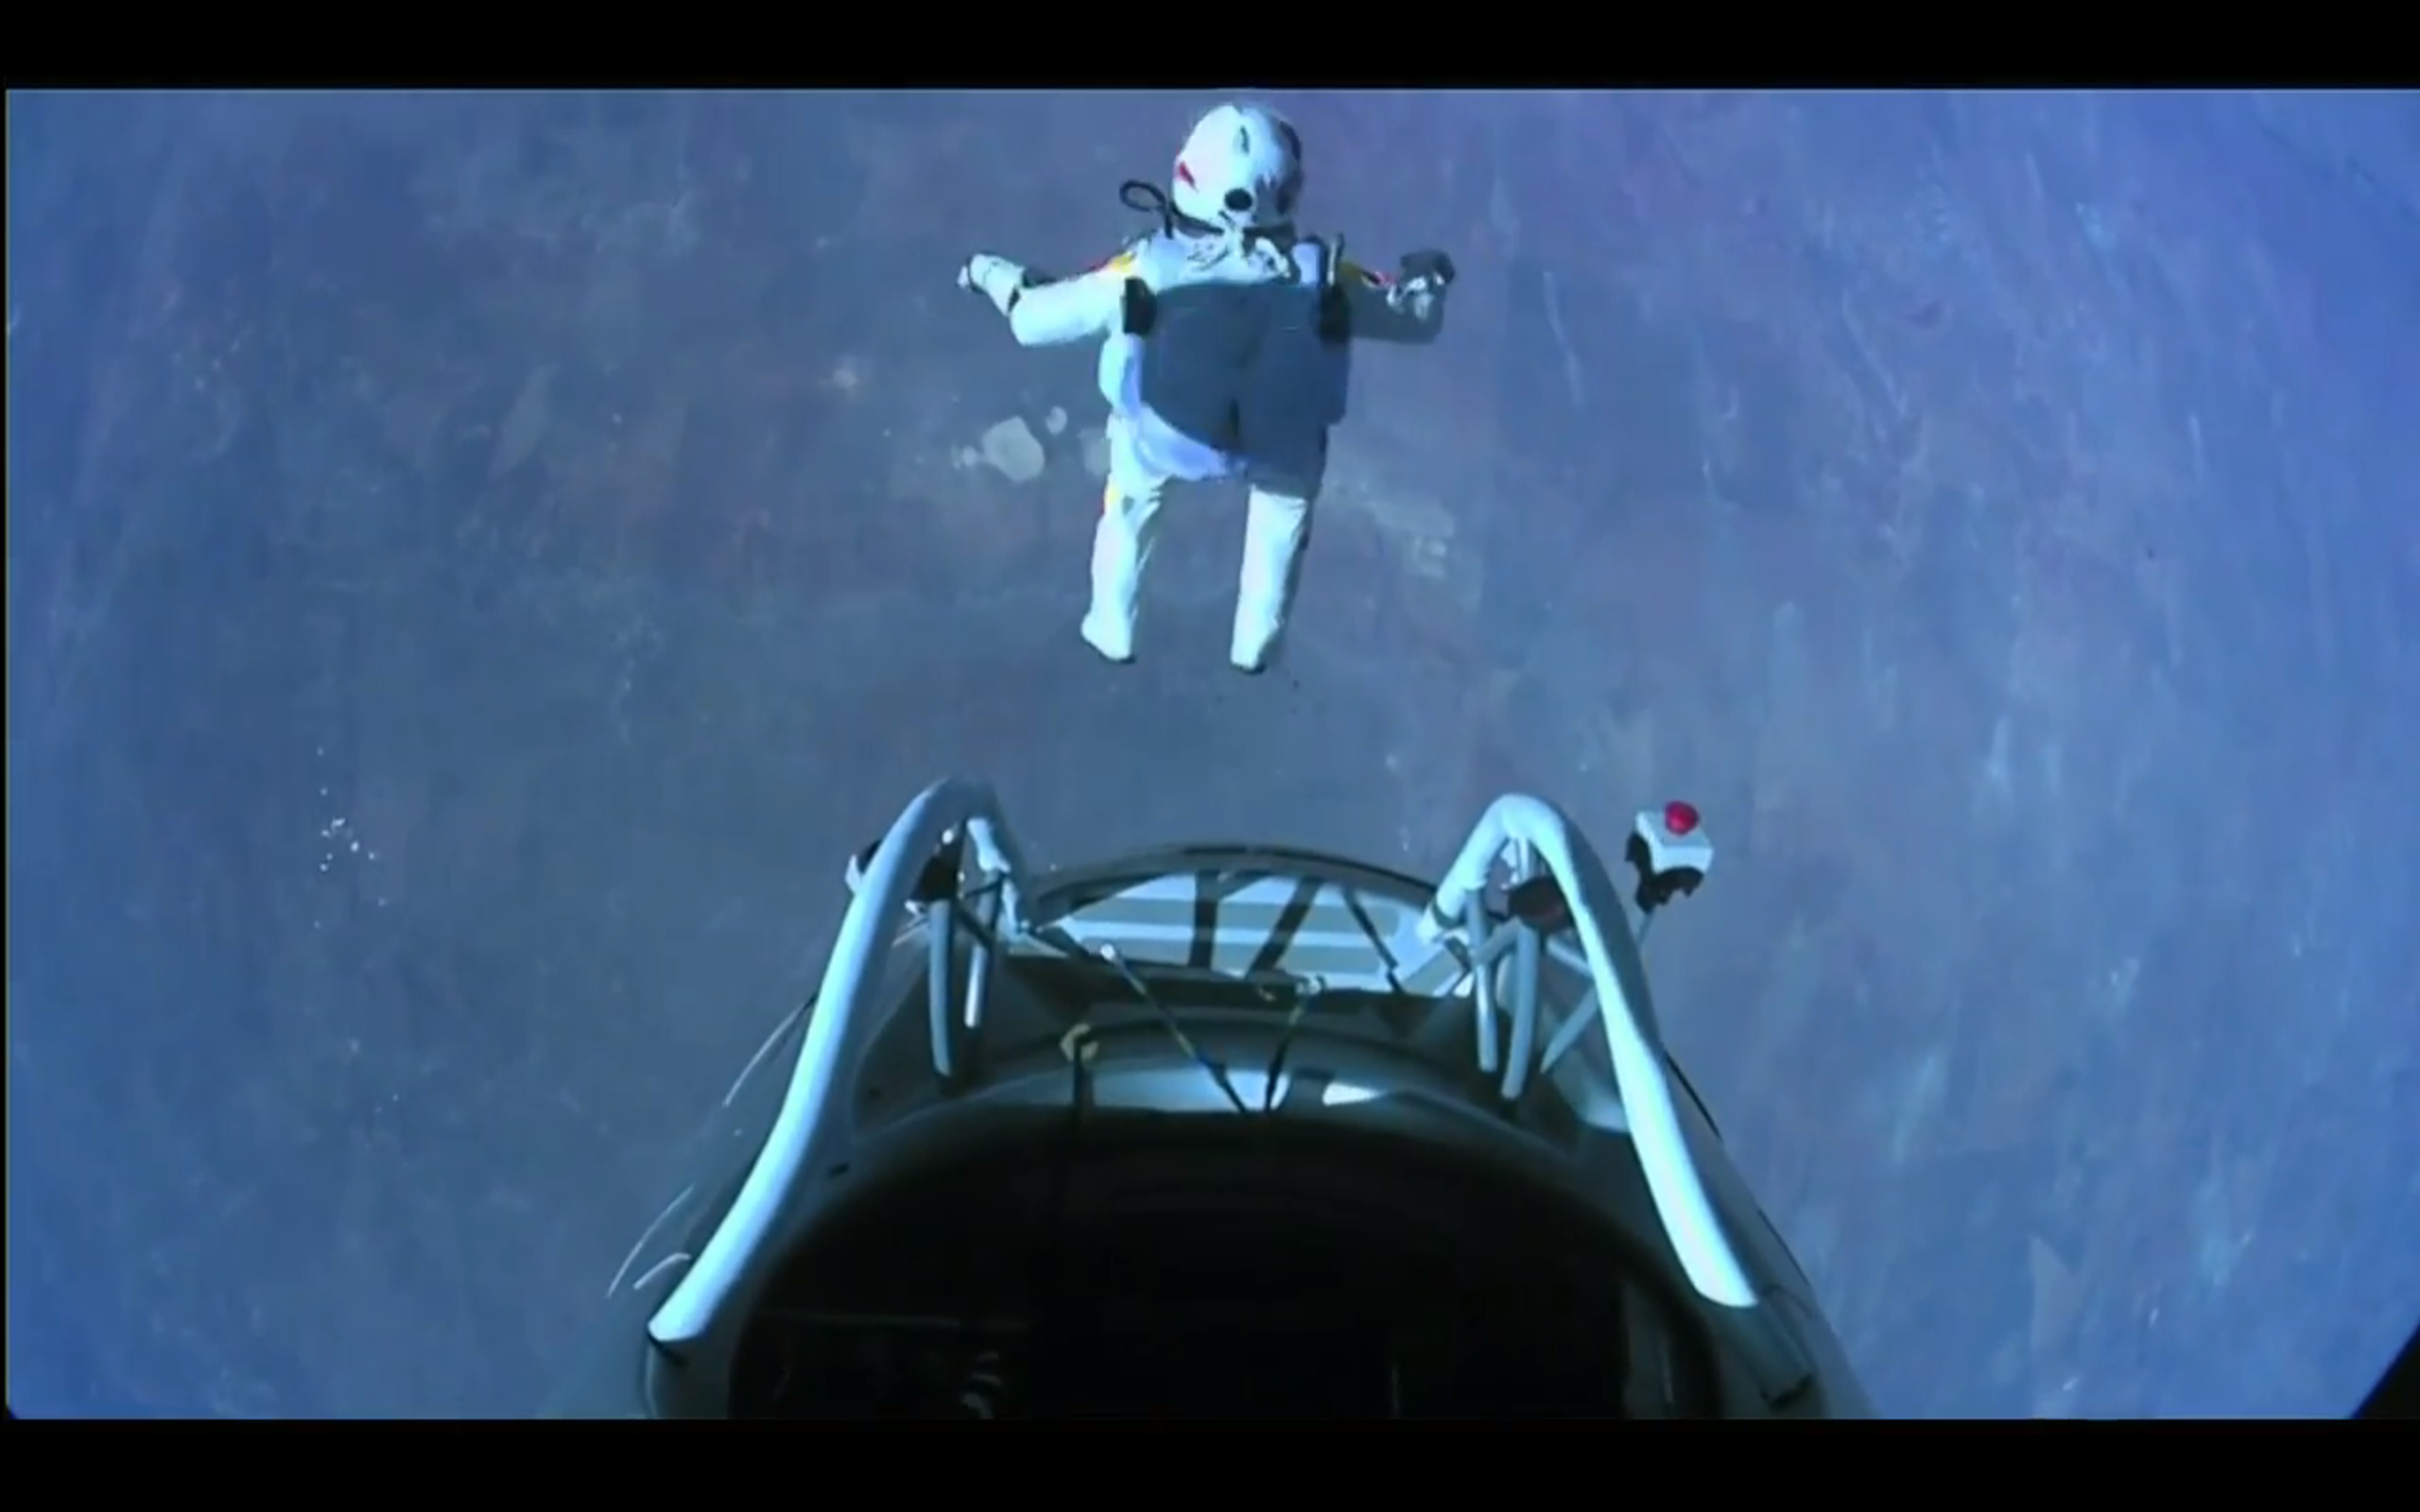 Felix Baumgartner jumping from 23 miles above the surface of the Earth.